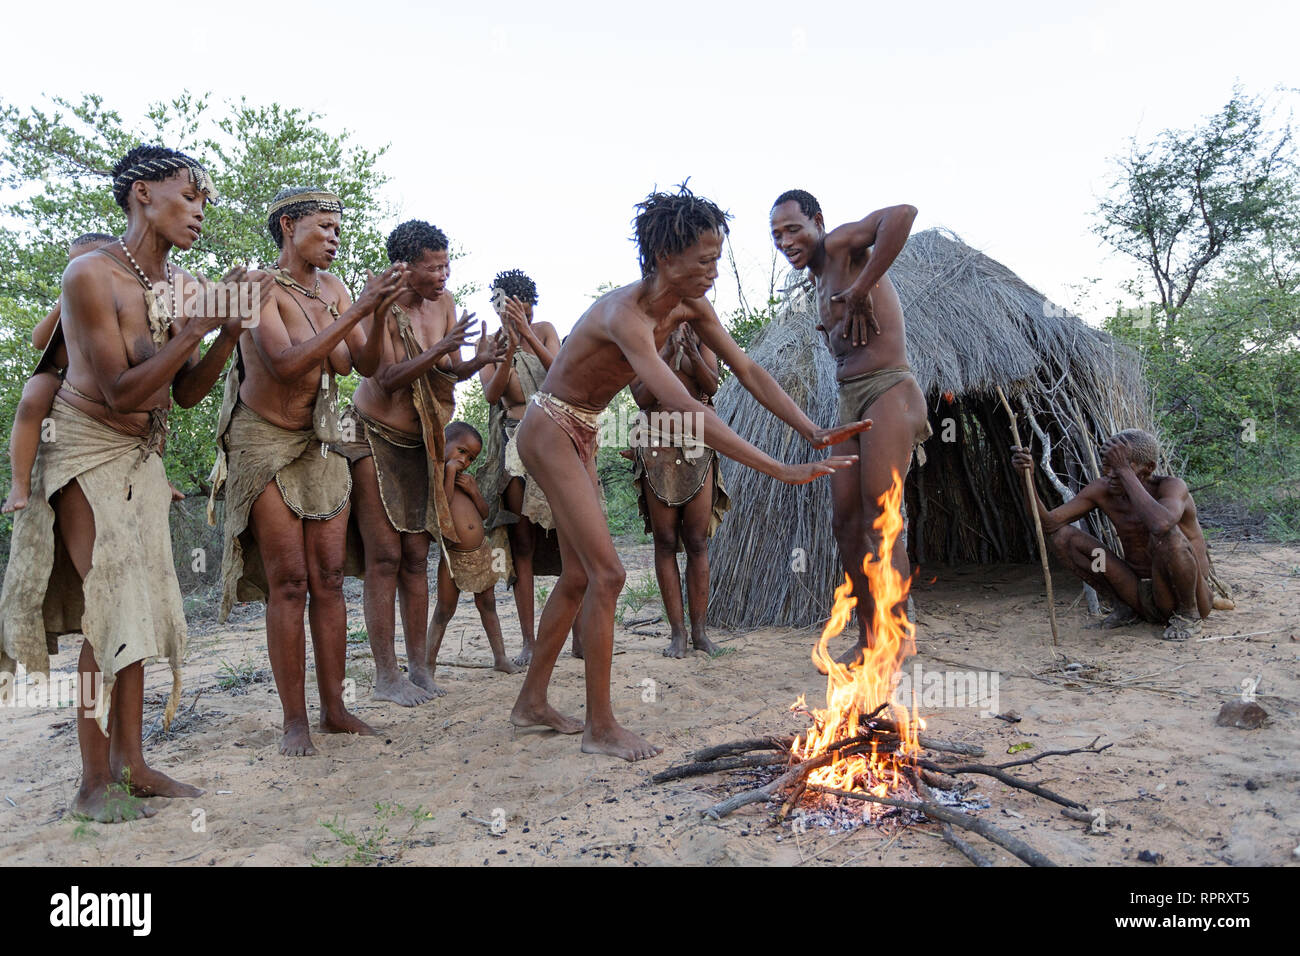 Bushmen of the San people singing and dancing traditional dances around the fire in front of the hut, Kalahari, Namibia, Africa Stock Photo